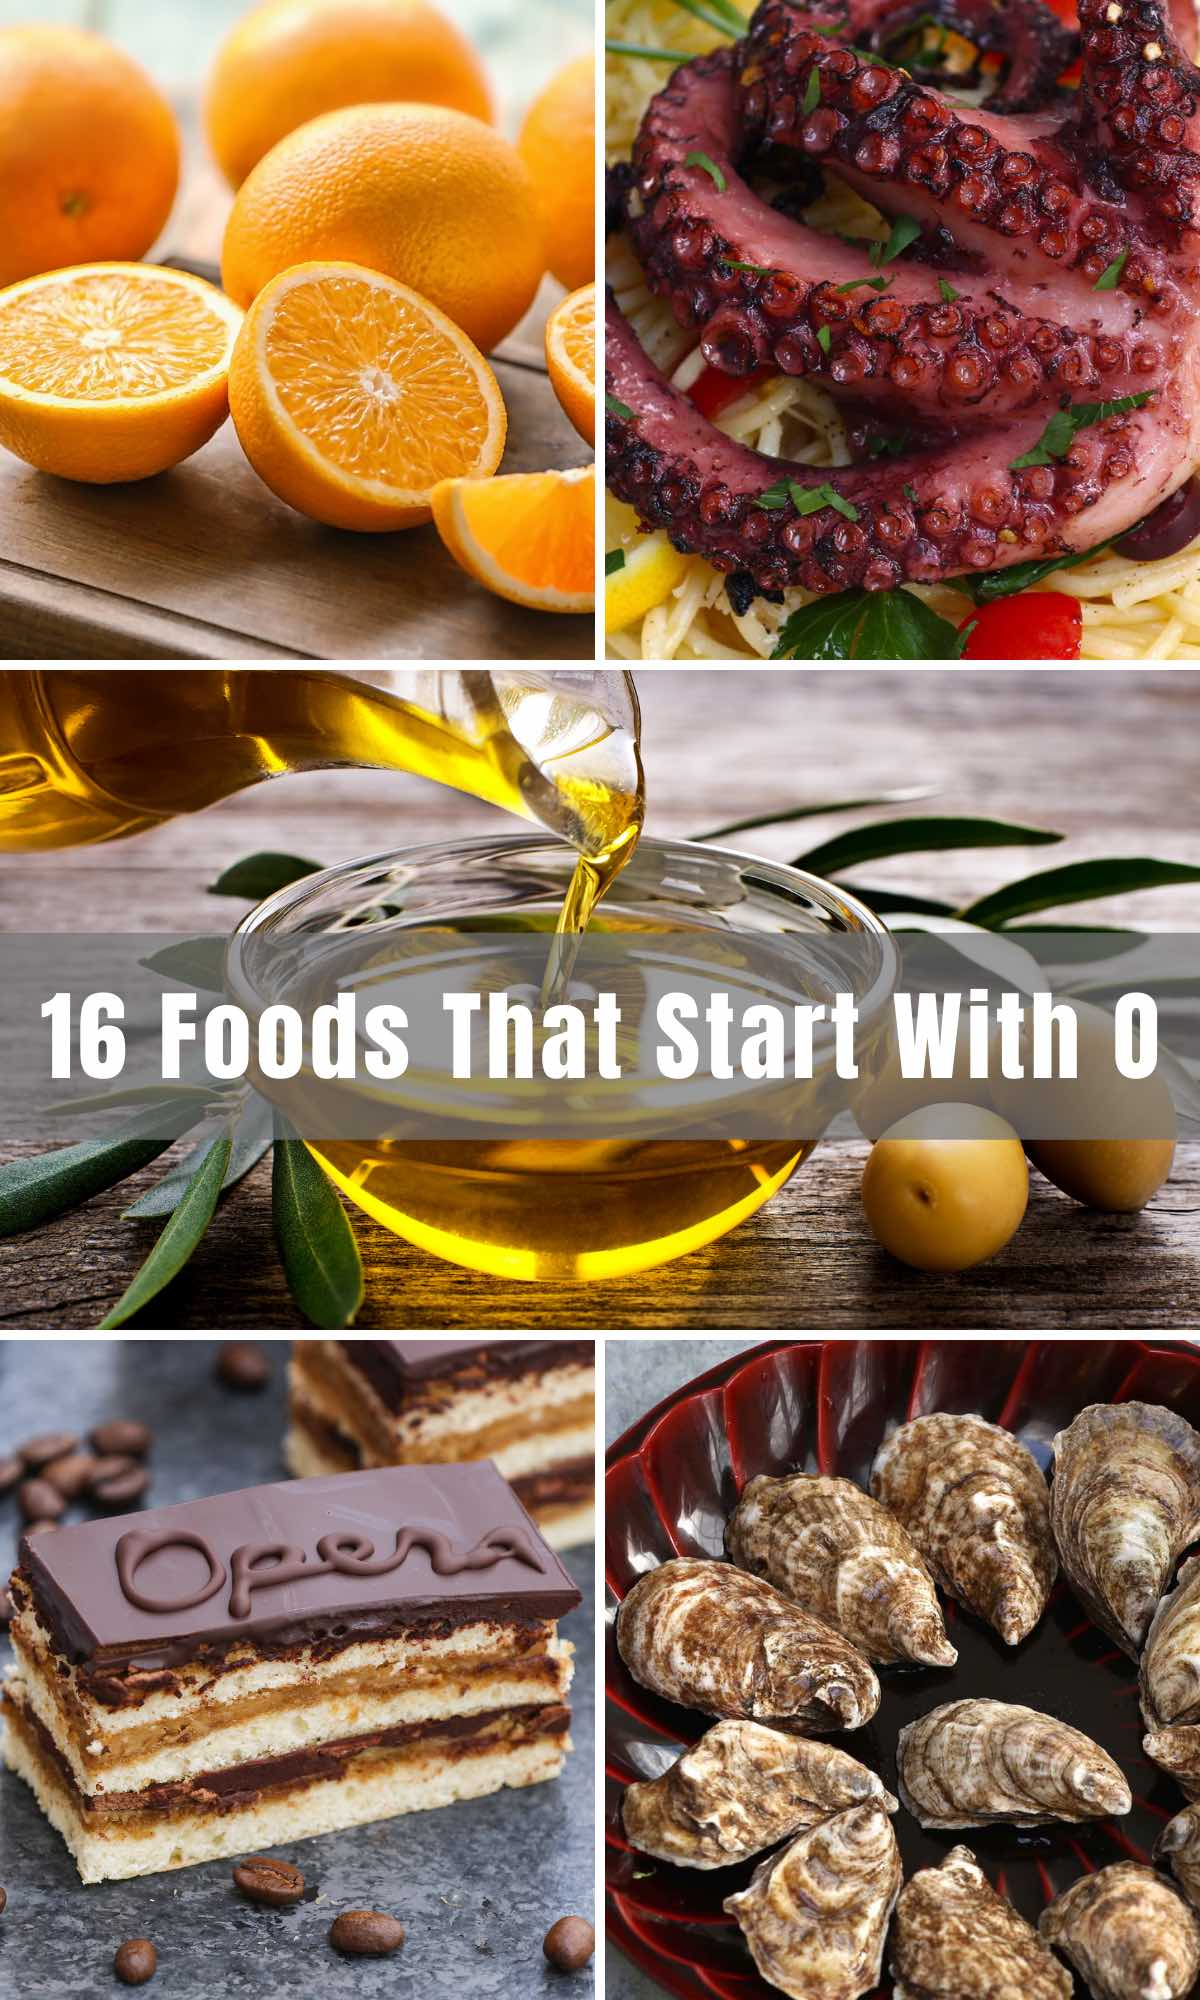 From plain old oatmeal to oysters and oxtail, foods that start with 'O' bring great curiosity to your palate and stomach. Enjoy the 16 popular foods beginning with the letter O!